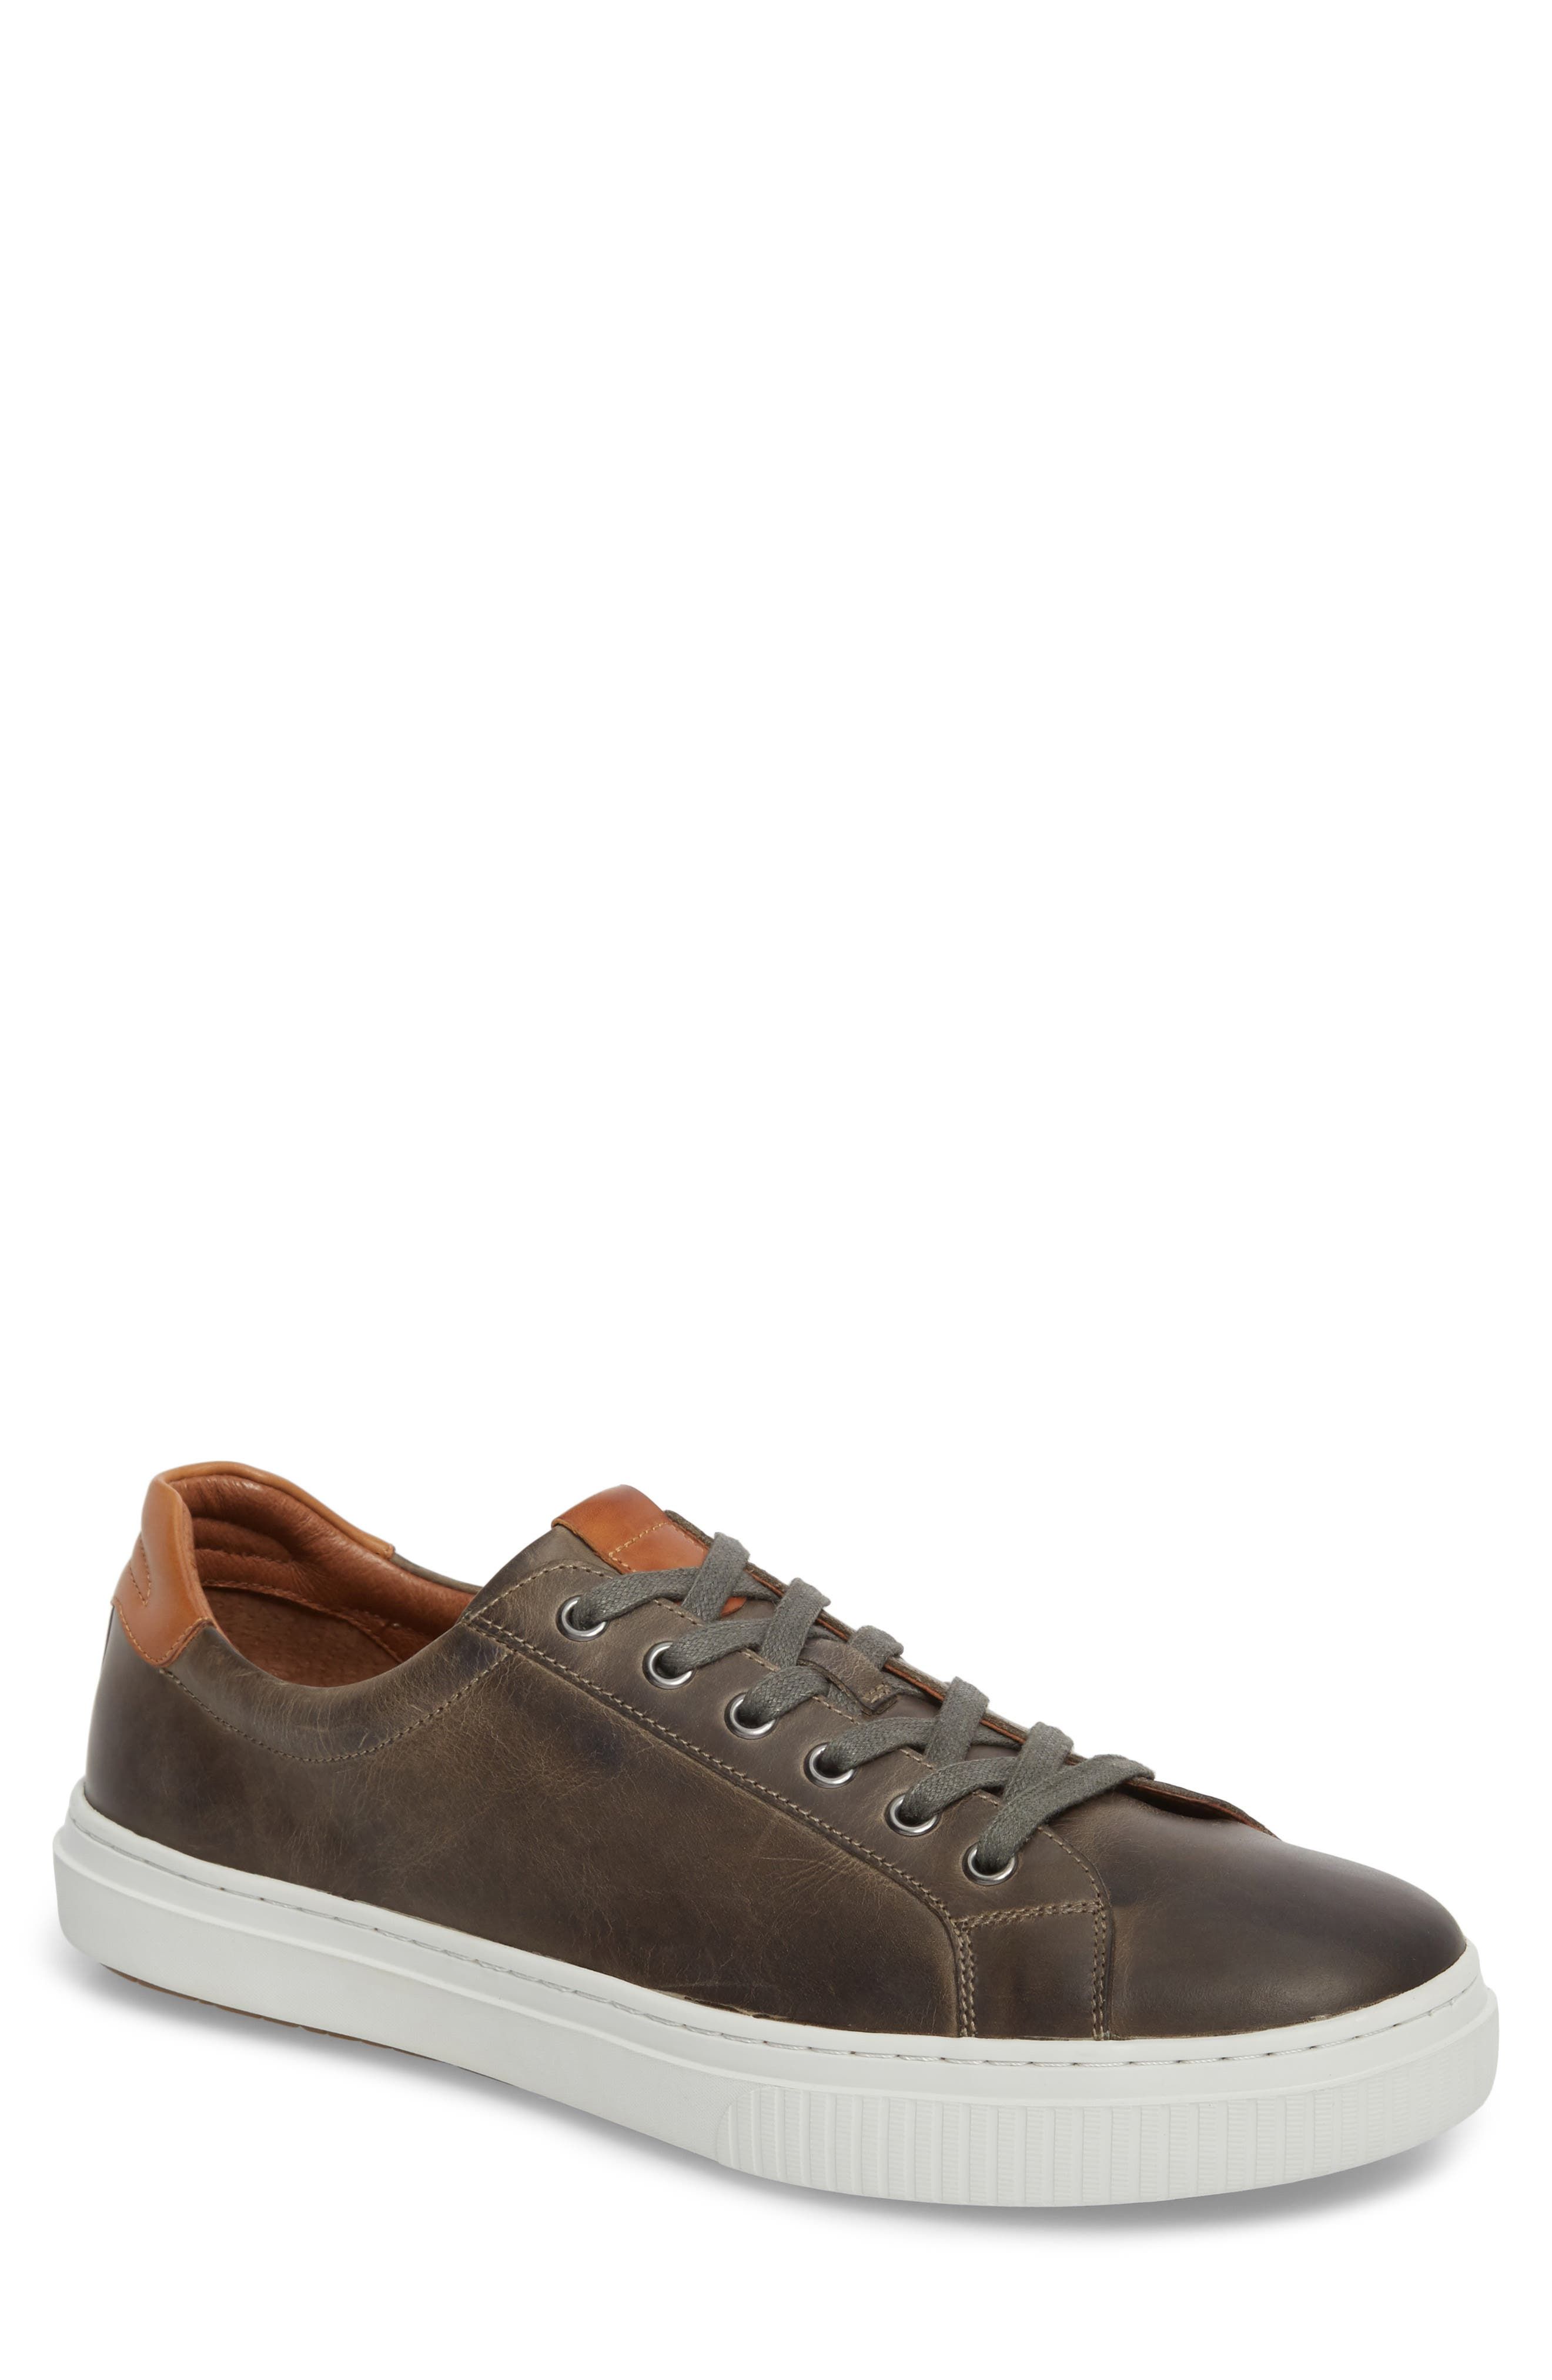 Toliver Low Top Sneaker,                             Main thumbnail 1, color,                             GREY LEATHER